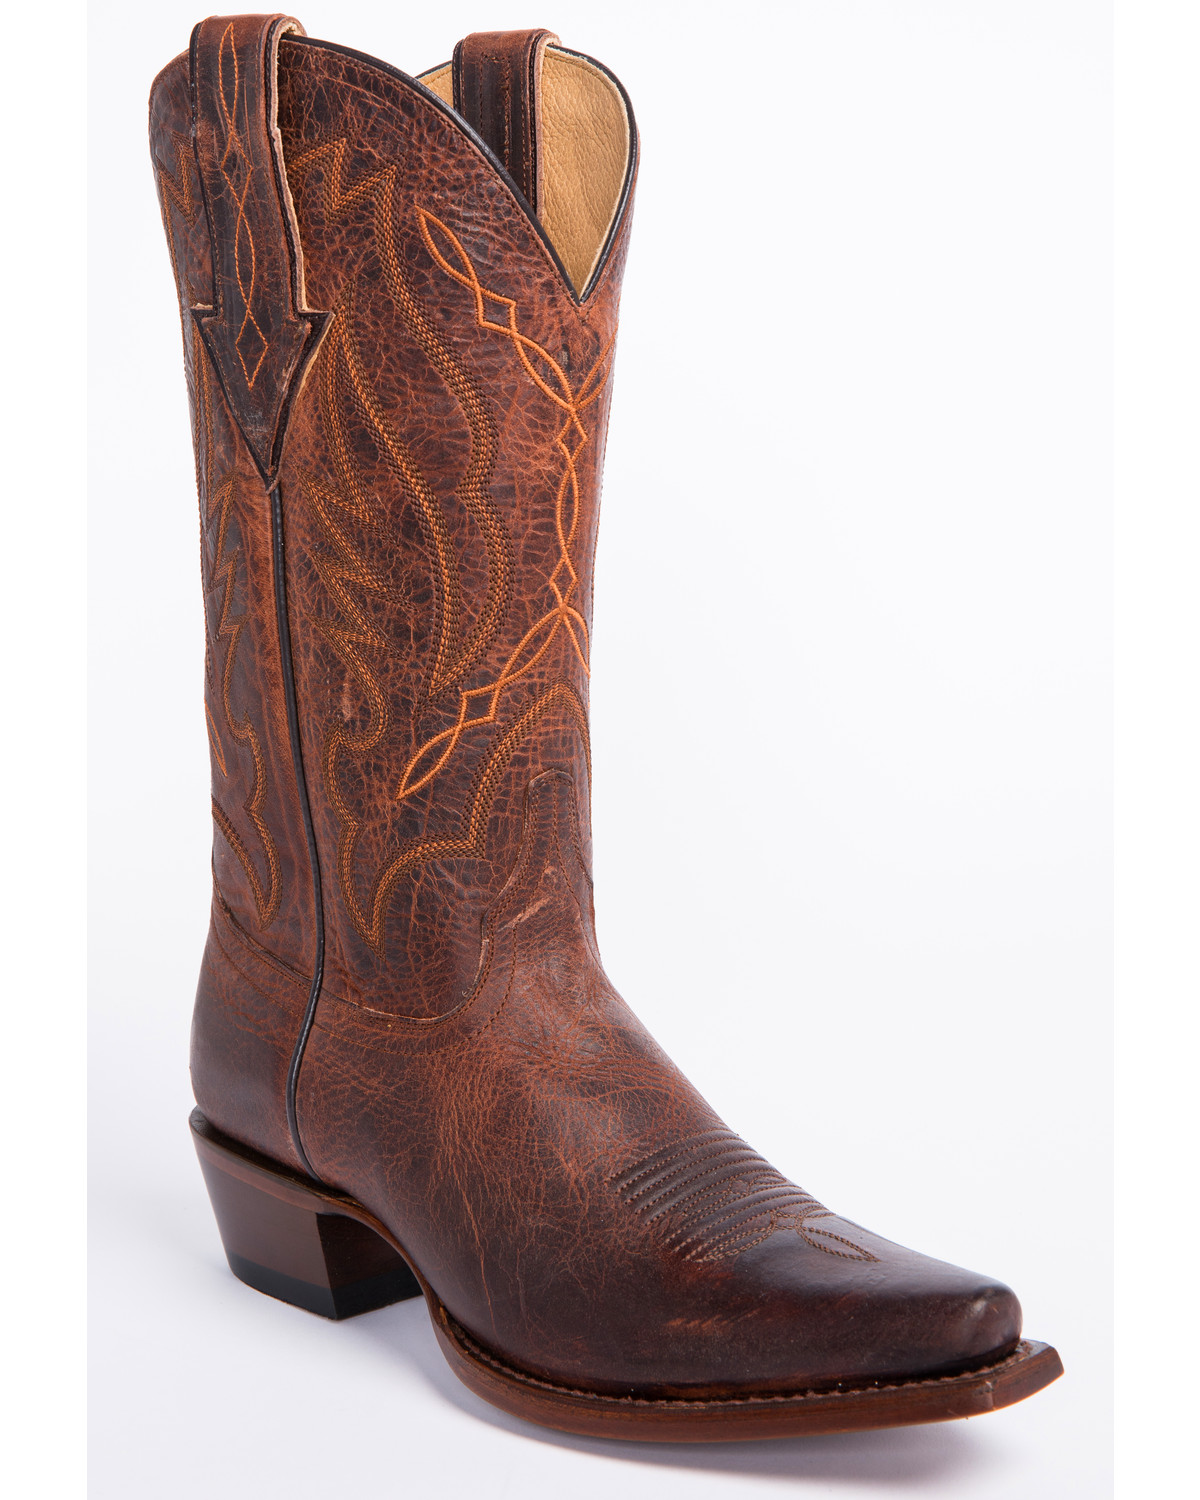 ae5f5bc3f978 Shyanne Women s Alyssa Western Boots - Snip Toe - Country Outfitter